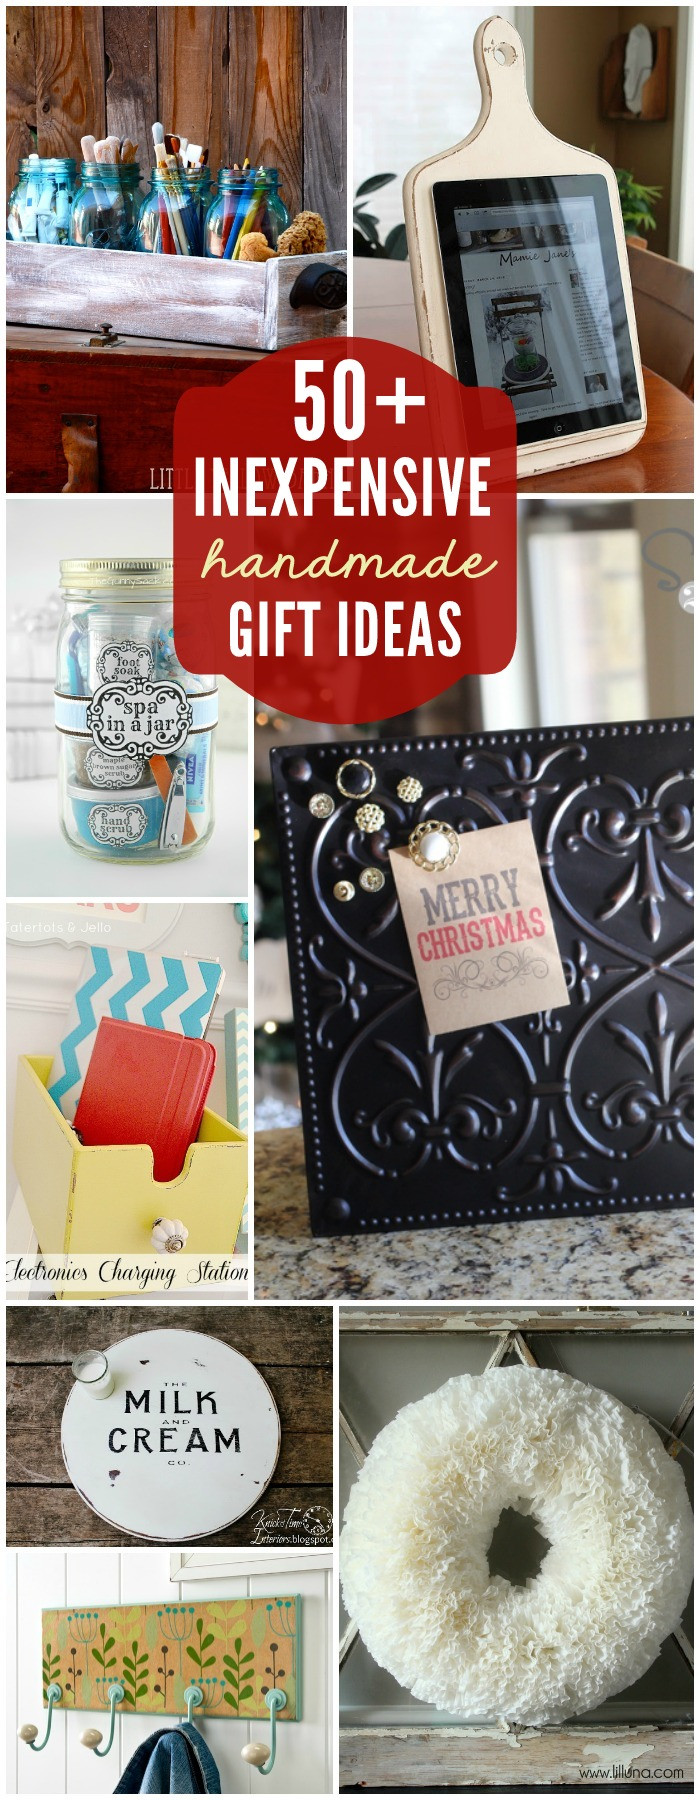 Best ideas about Cheap Gift Ideas . Save or Pin 75 Gift Ideas under $5 Now.